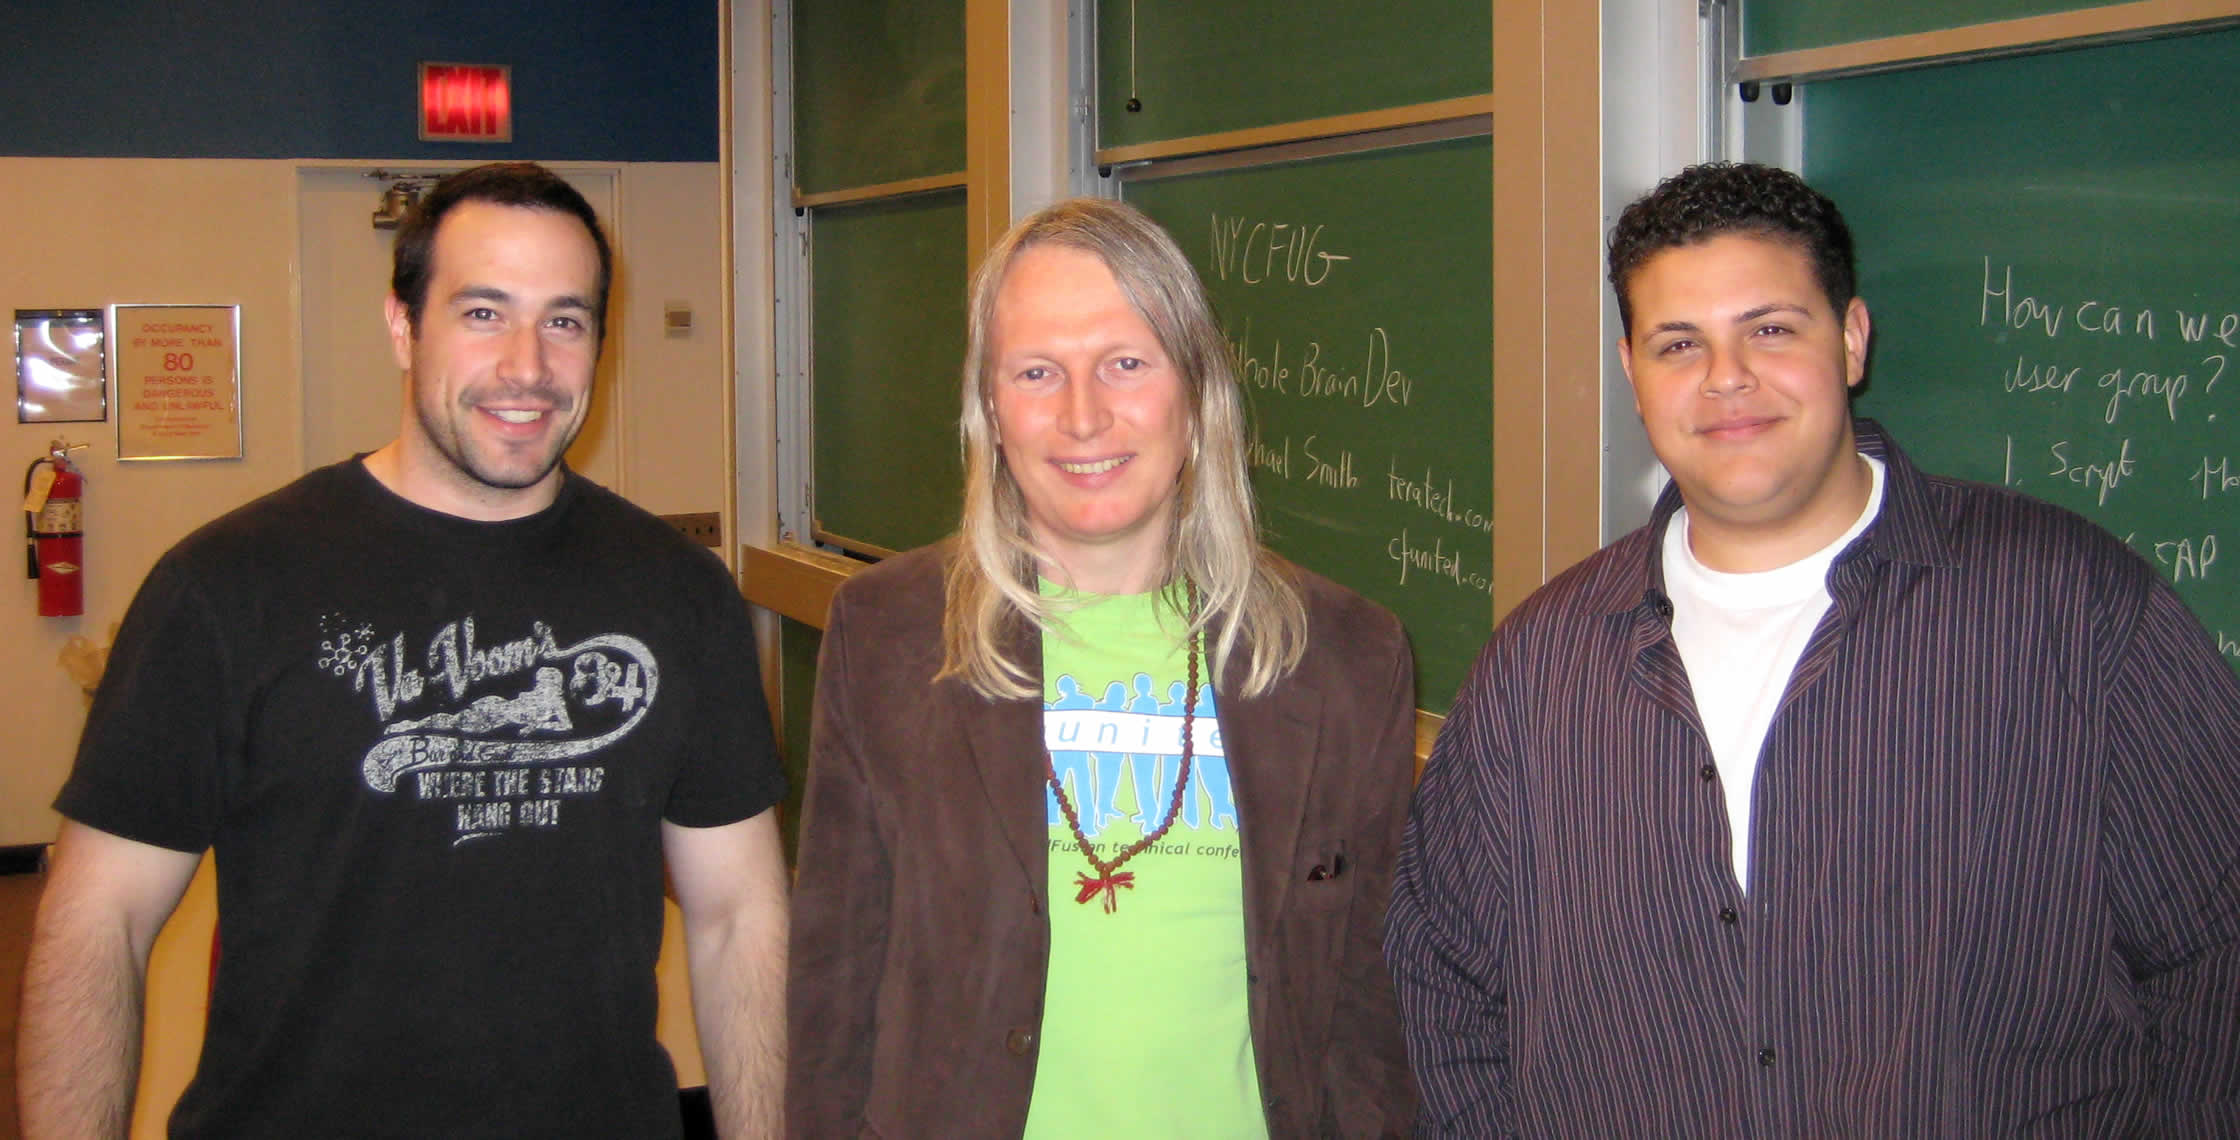 Ben Nadel at the New York ColdFusion User Group (May. 2008) with: Michael Smith and Clark Valberg